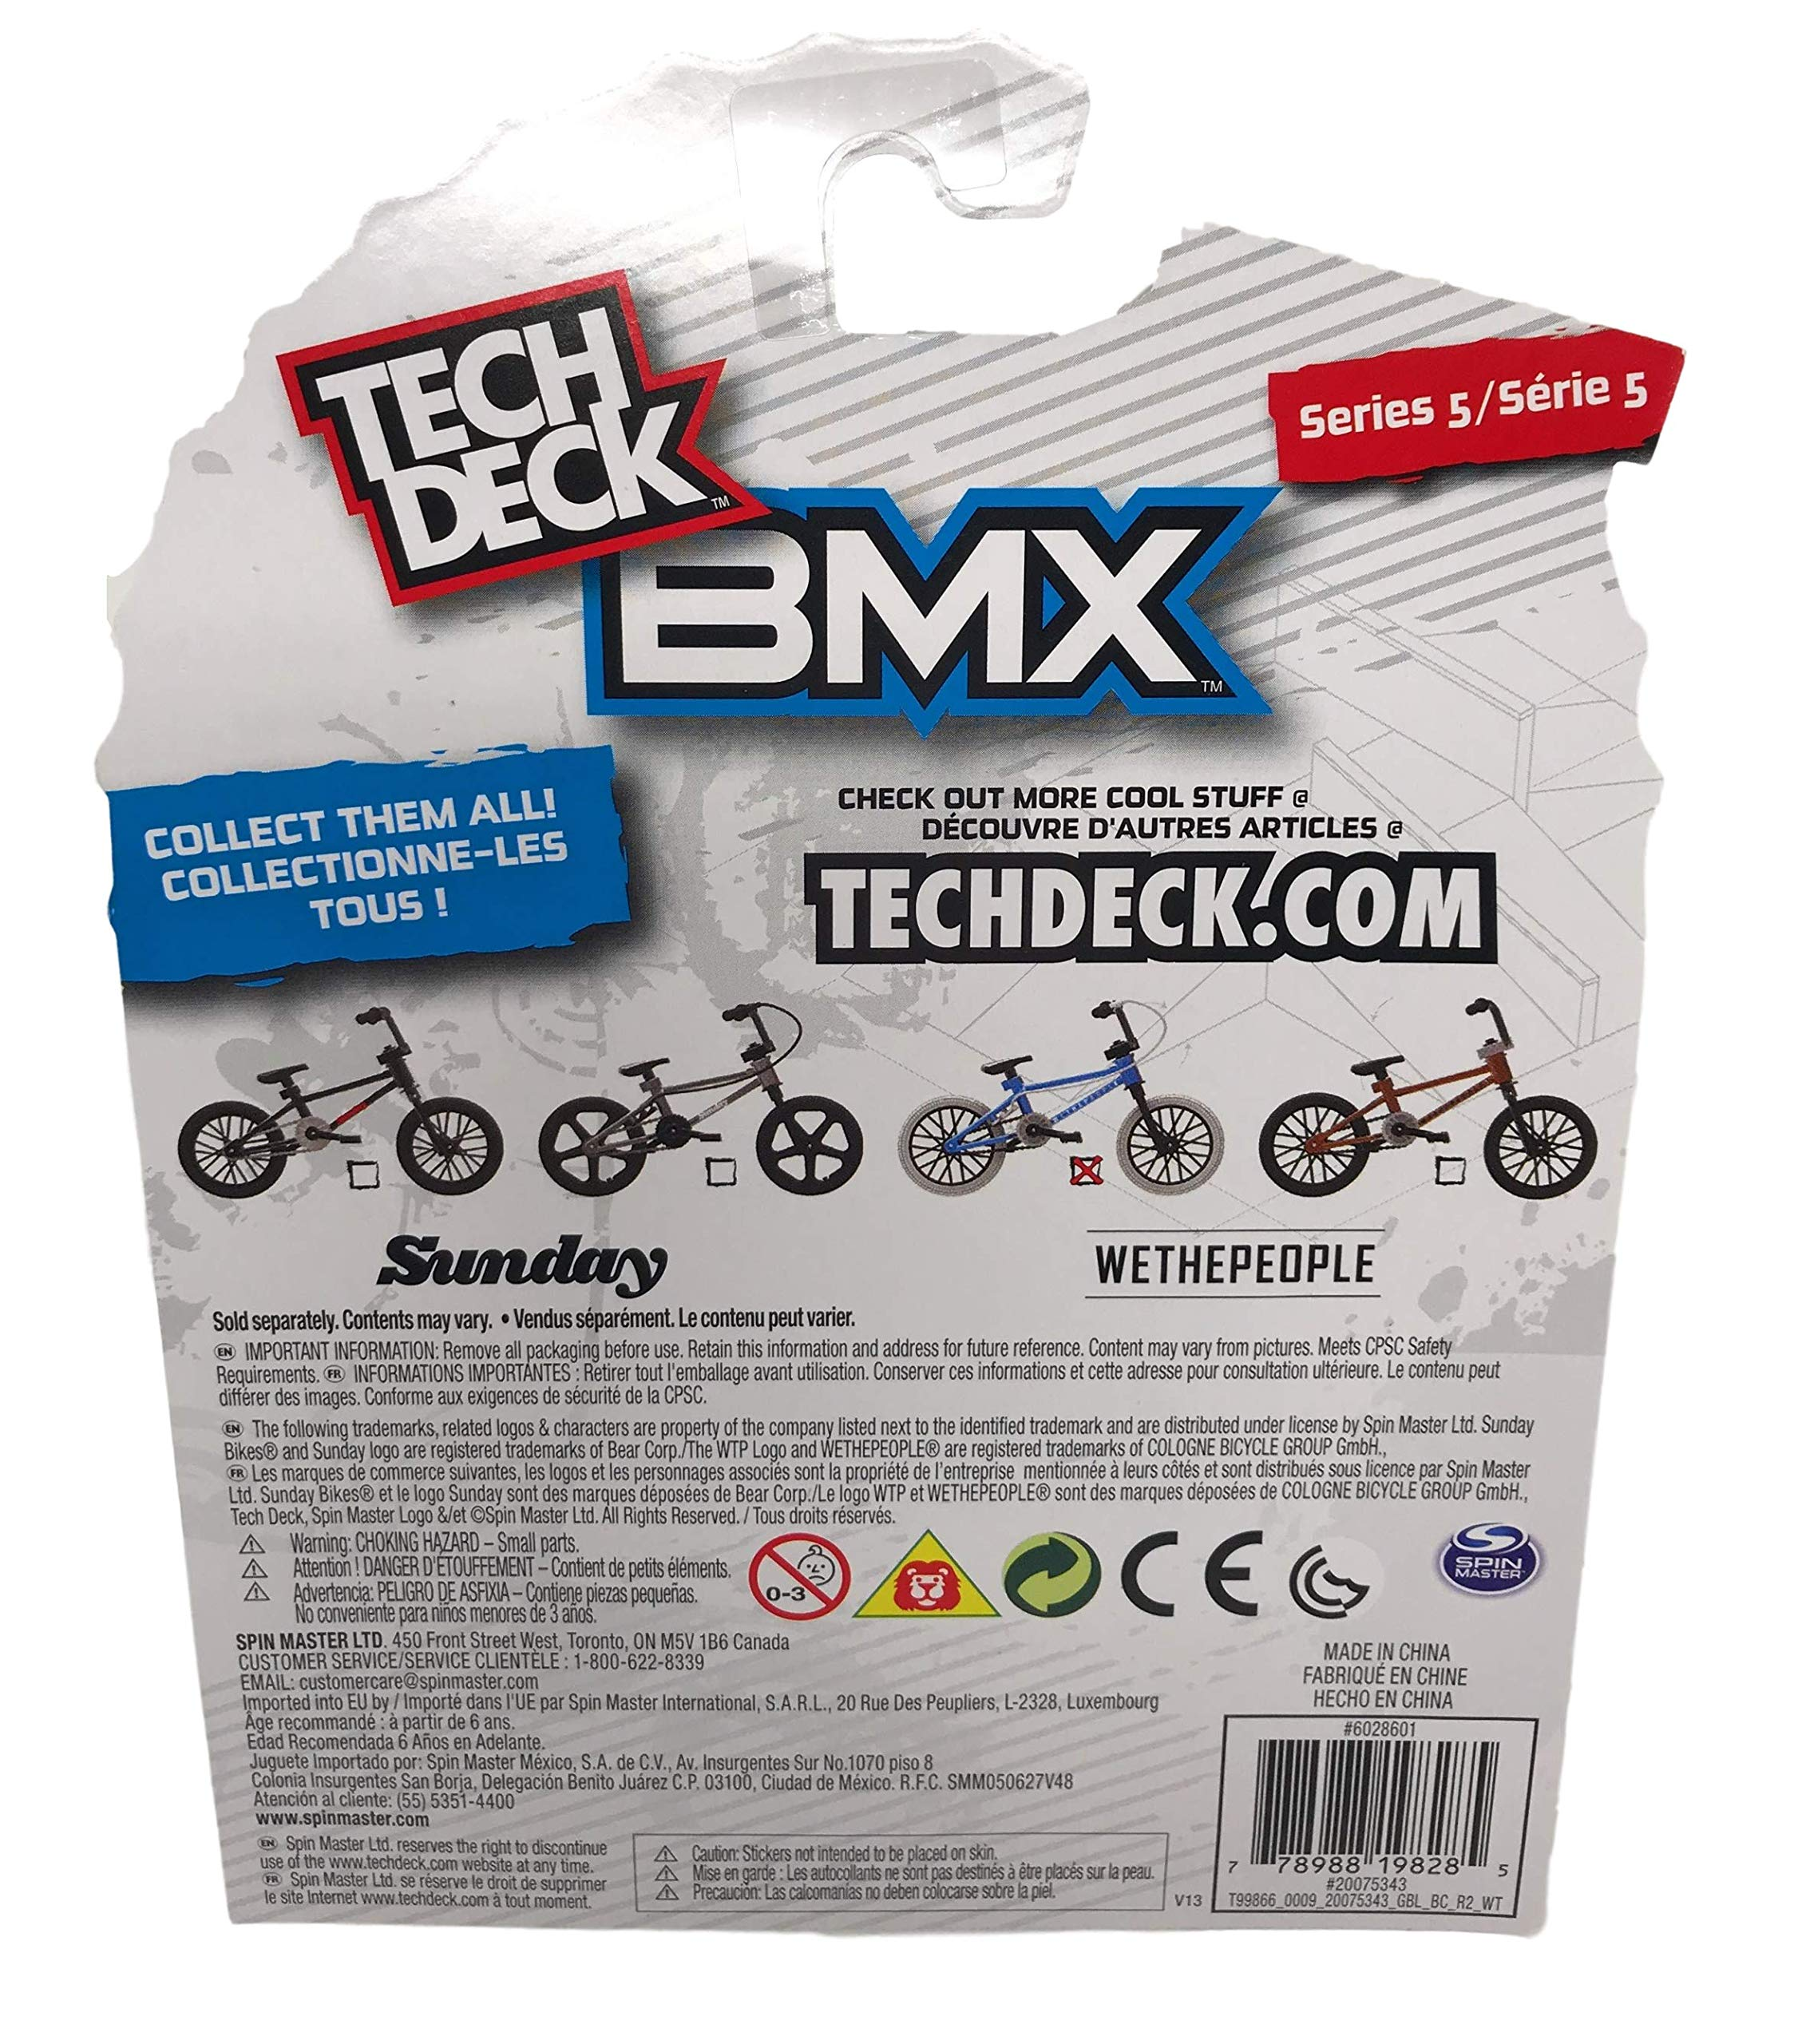 Nozlen Toys Bundle: Tech Deck Series 5 BMX Bikes Set of 4 - WeThePeople and Sunday with Bonus Bag by Nozlen Toys (Image #6)